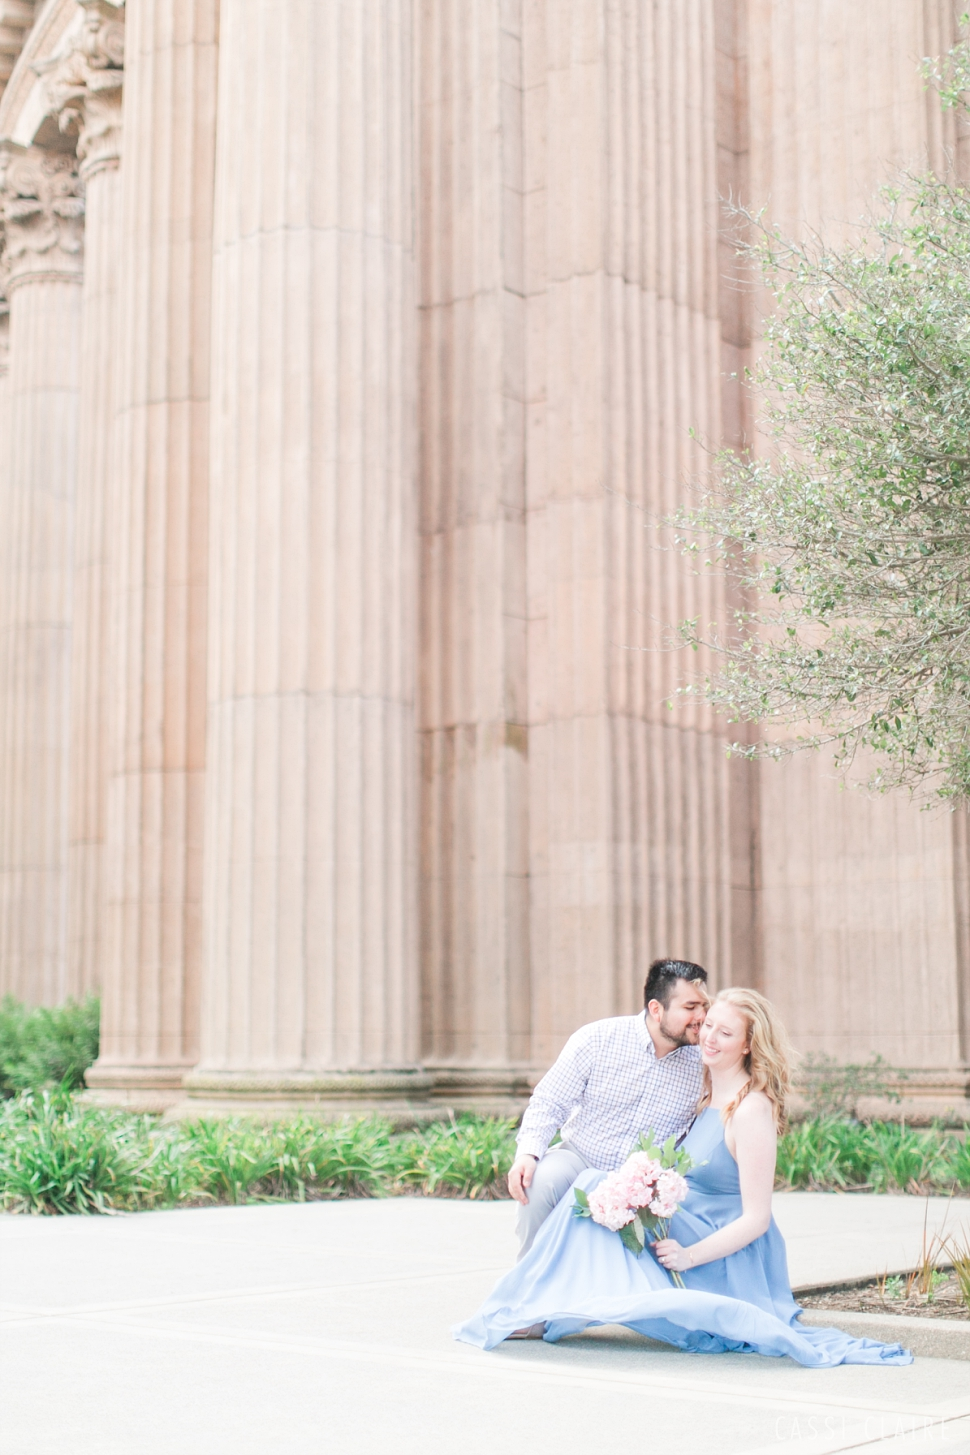 San-Francisco-Wedding-Photographer-Cassi-Claire_02.jpg